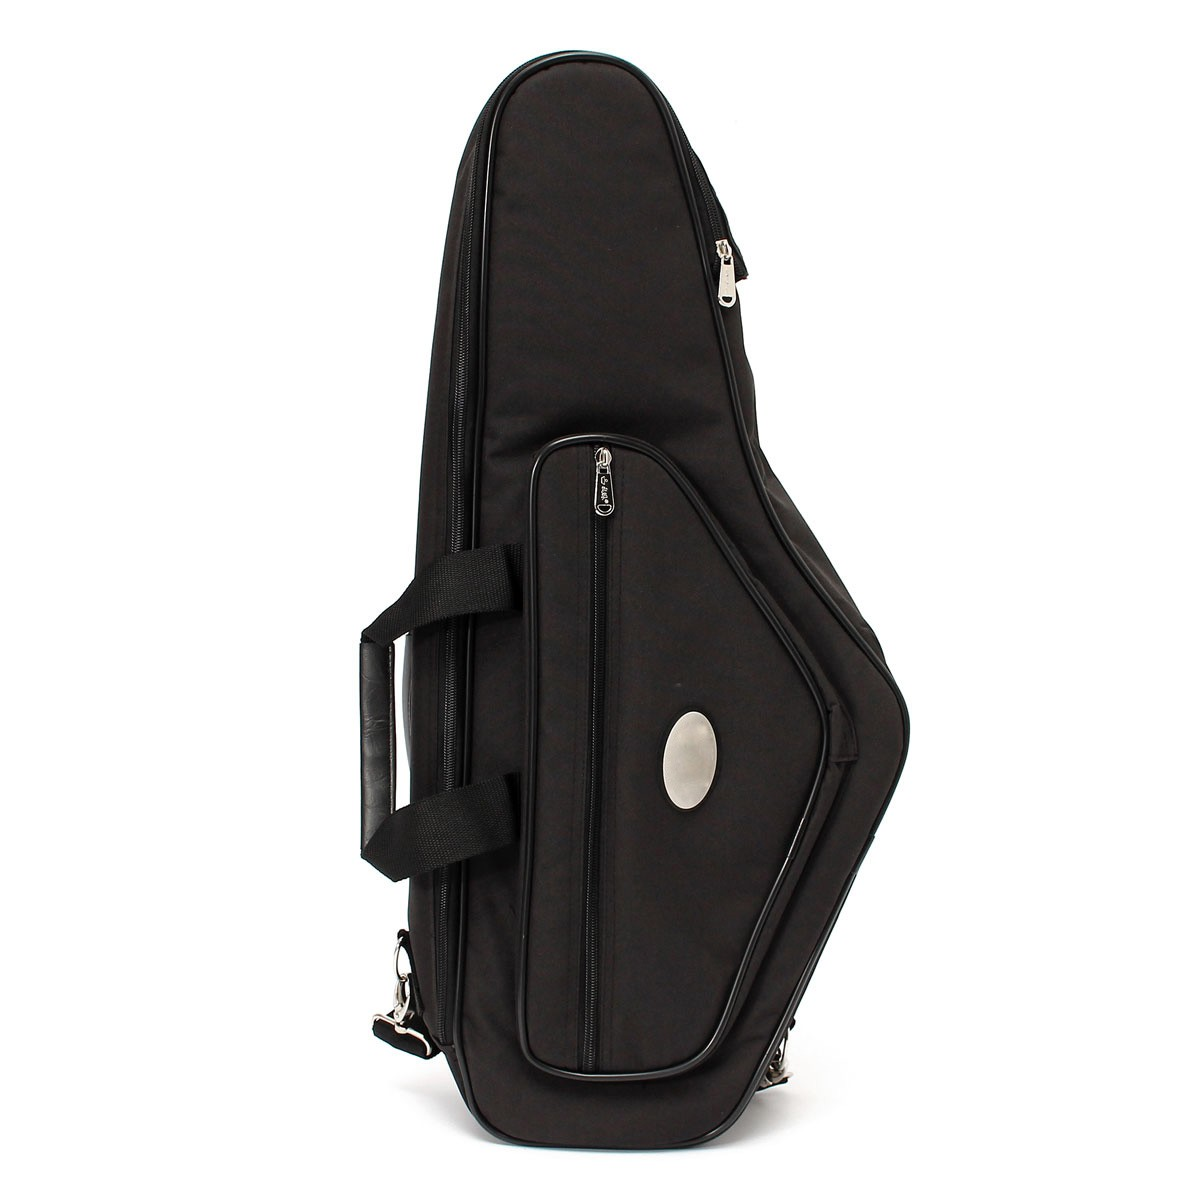 2016 Oxford Black Alto Saxophone Bag Case Double Carry Handles And Two Adjustable Shoulder Straps With Exterior For Pocket аксессуар jawbone big jambox carry case j2011 03 case rp black